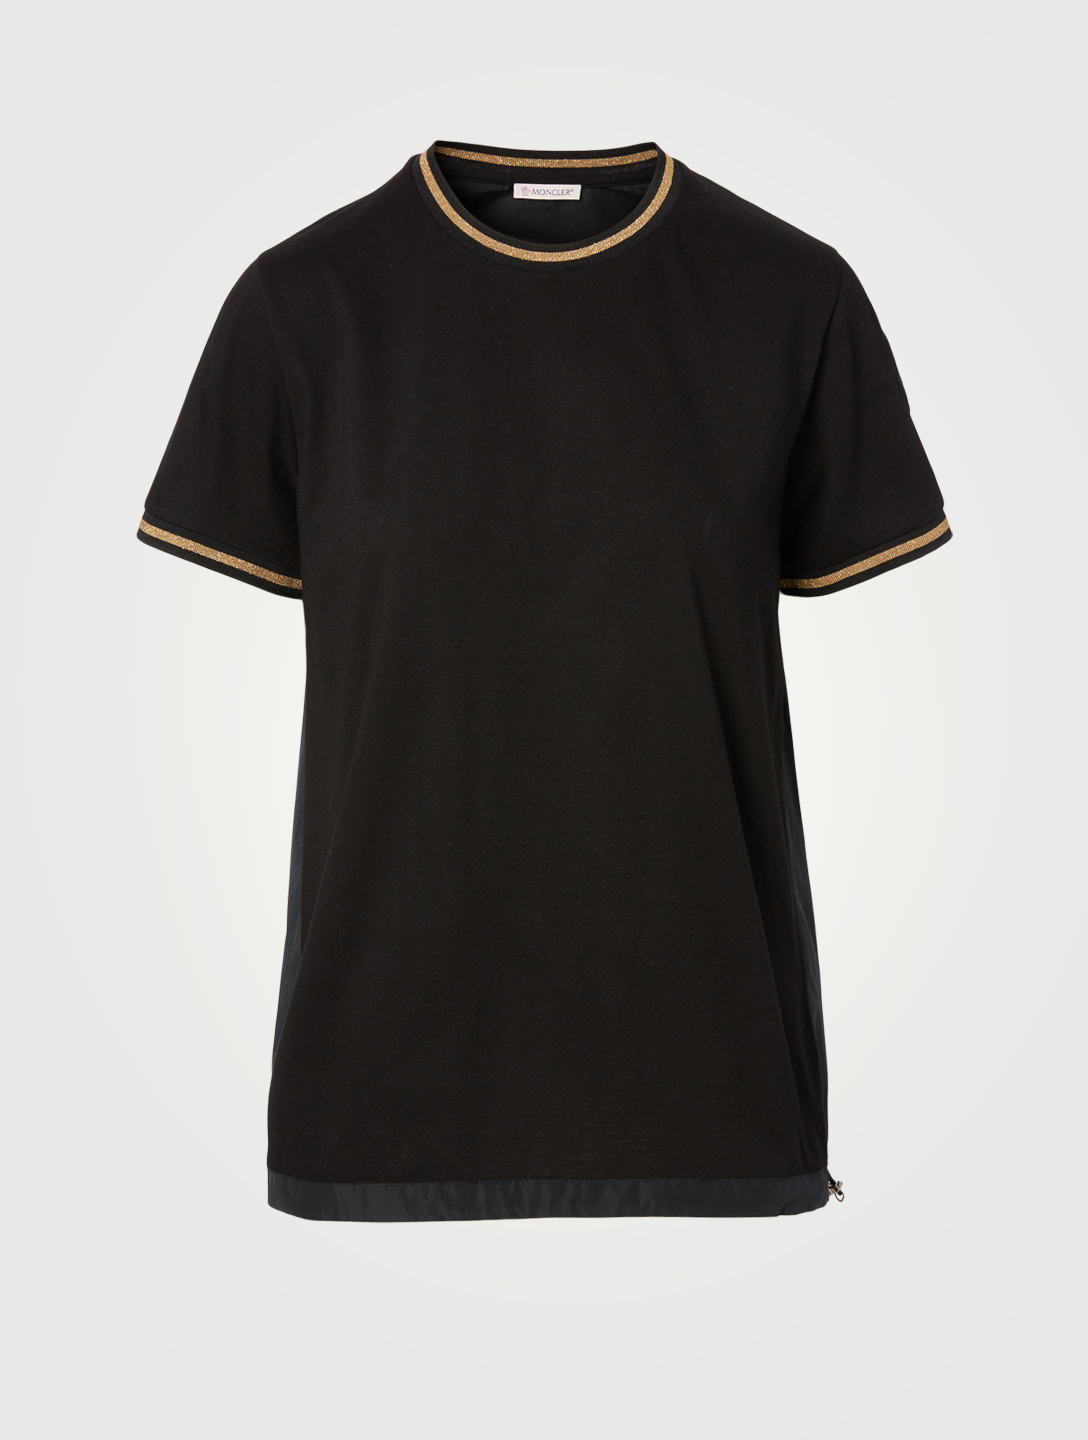 MONCLER Cotton Drawcord T-Shirt Women's Black